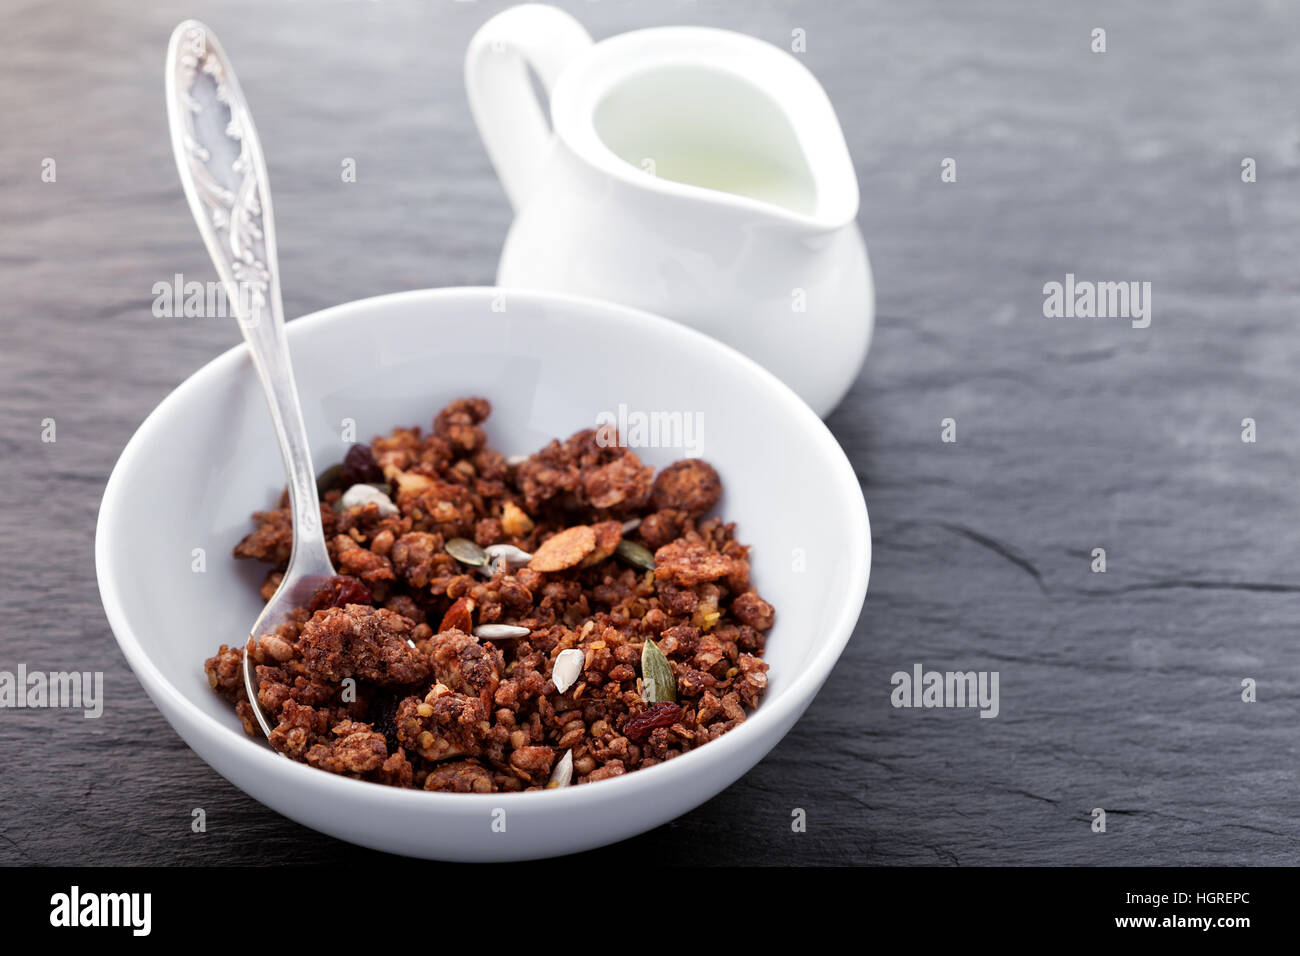 Granola - Healthy Chocolate Oat Bars in a white plate. - Stock Image